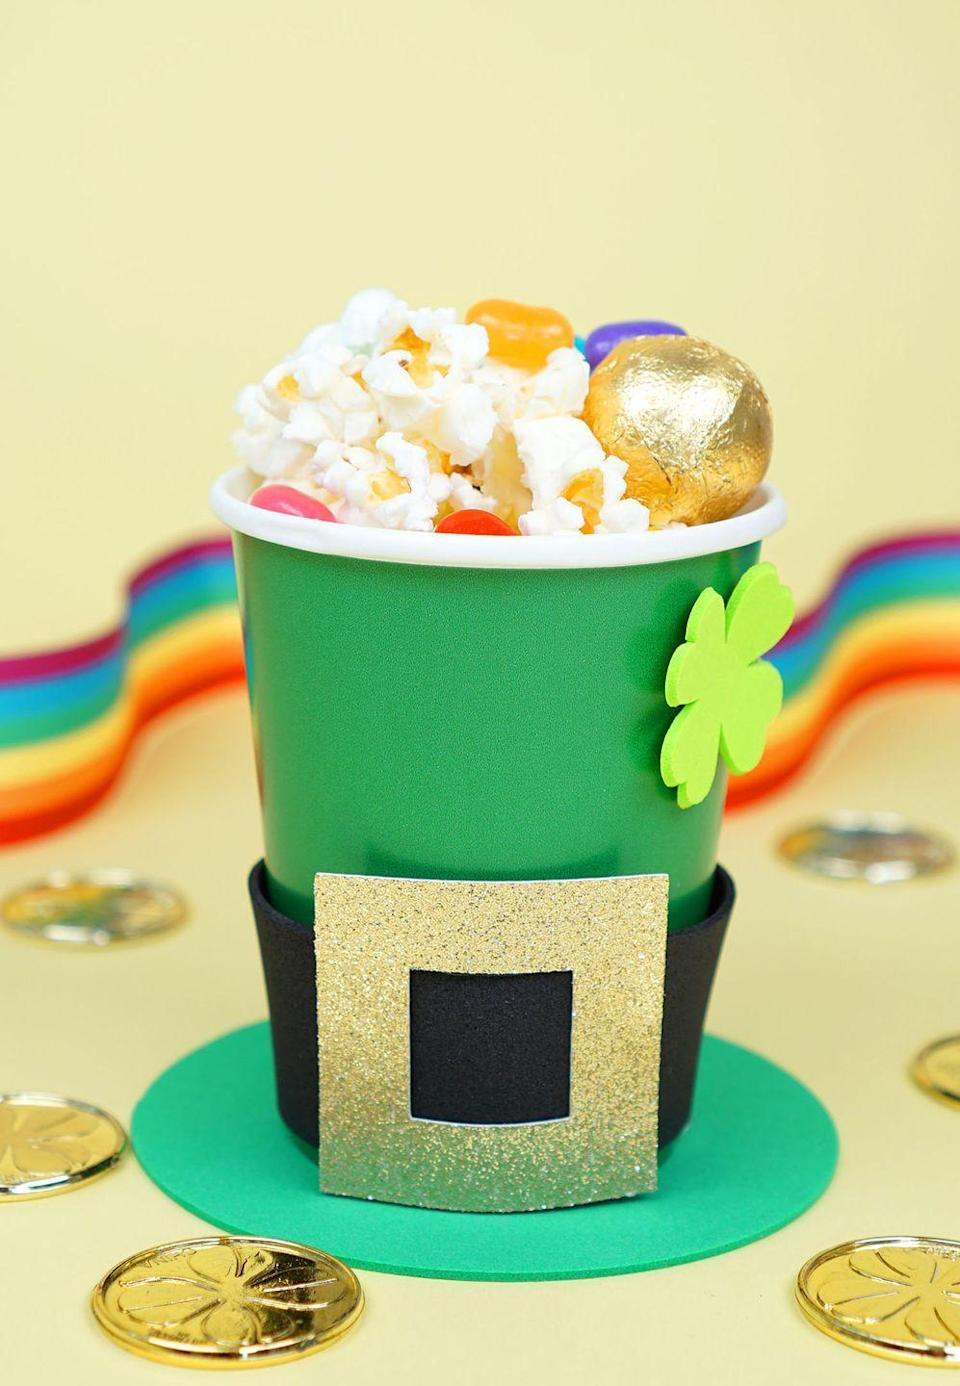 """<p>Put these cheerful Leprechaun hats together for your party guests to enjoy their snacks in.</p><p><strong>Get the tutorial at <a href=""""https://www.happinessishomemade.net/leprechaun-hat-st-patricks-day-treats/"""" rel=""""nofollow noopener"""" target=""""_blank"""" data-ylk=""""slk:Happiness Is Homemade"""" class=""""link rapid-noclick-resp"""">Happiness Is Homemade</a>.</strong></p><p><strong><a class=""""link rapid-noclick-resp"""" href=""""https://www.amazon.com/Adtech-Mini-Temp-Glue-Combo/dp/B00URCP4PC/?tag=syn-yahoo-20&ascsubtag=%5Bartid%7C10050.g.4036%5Bsrc%7Cyahoo-us"""" rel=""""nofollow noopener"""" target=""""_blank"""" data-ylk=""""slk:SHOP HOT GLUE GUNS"""">SHOP HOT GLUE GUNS</a><br></strong></p>"""